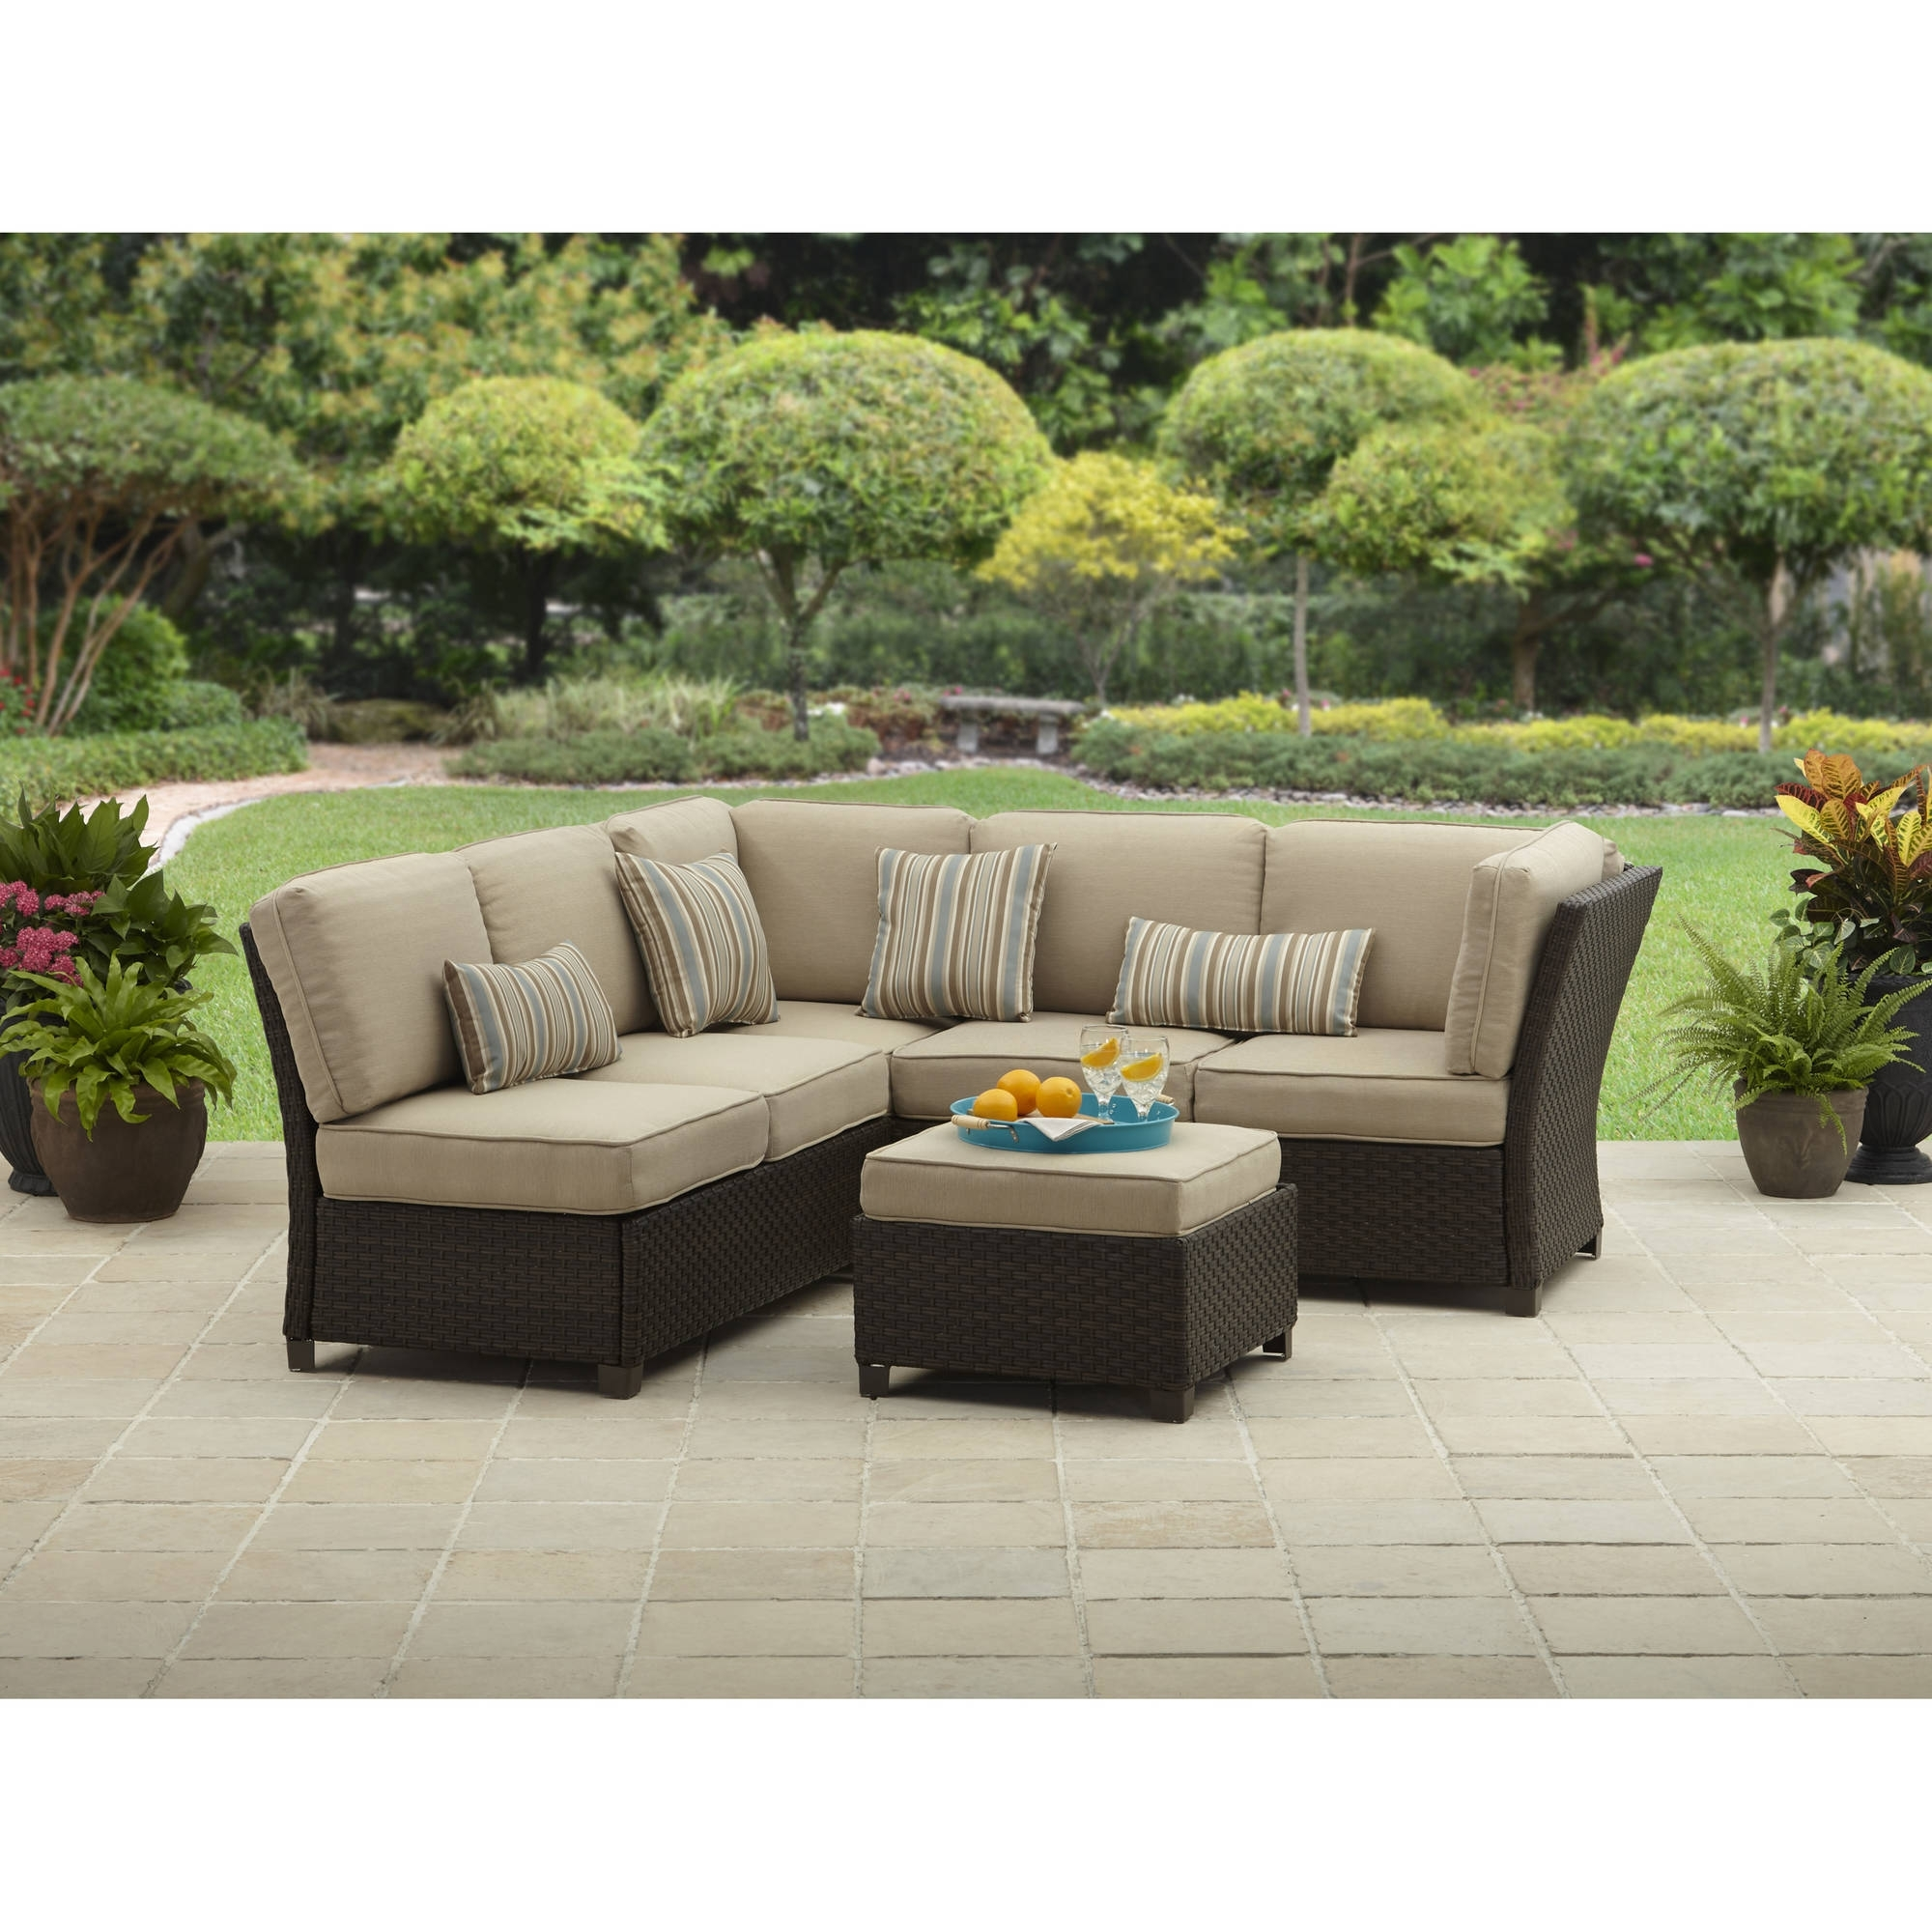 Well Liked Sectional Sofas At Walmart With Better Homes And Gardens Cadence Wicker Outdoor Sectional Sofa Set (View 10 of 15)